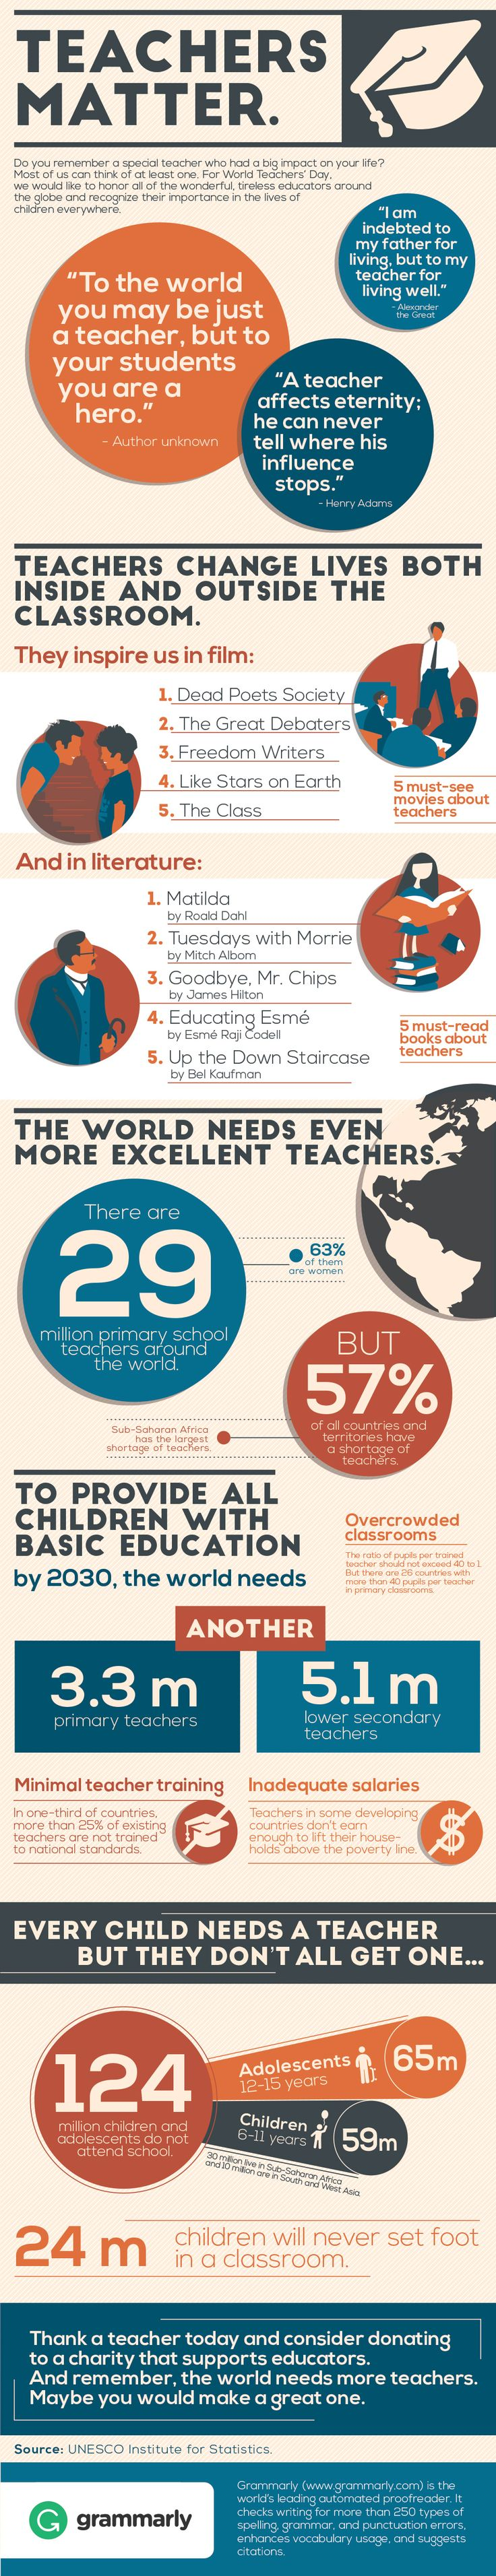 http://stuartaken.net/2015/10/01/world-teachers-day/      Monday, 5th October, is World Teachers Day. I'm posting this infographic now, courtesy of Grammarly at so that you can share the day, take part in any events and maybe donate to an appropriate char...